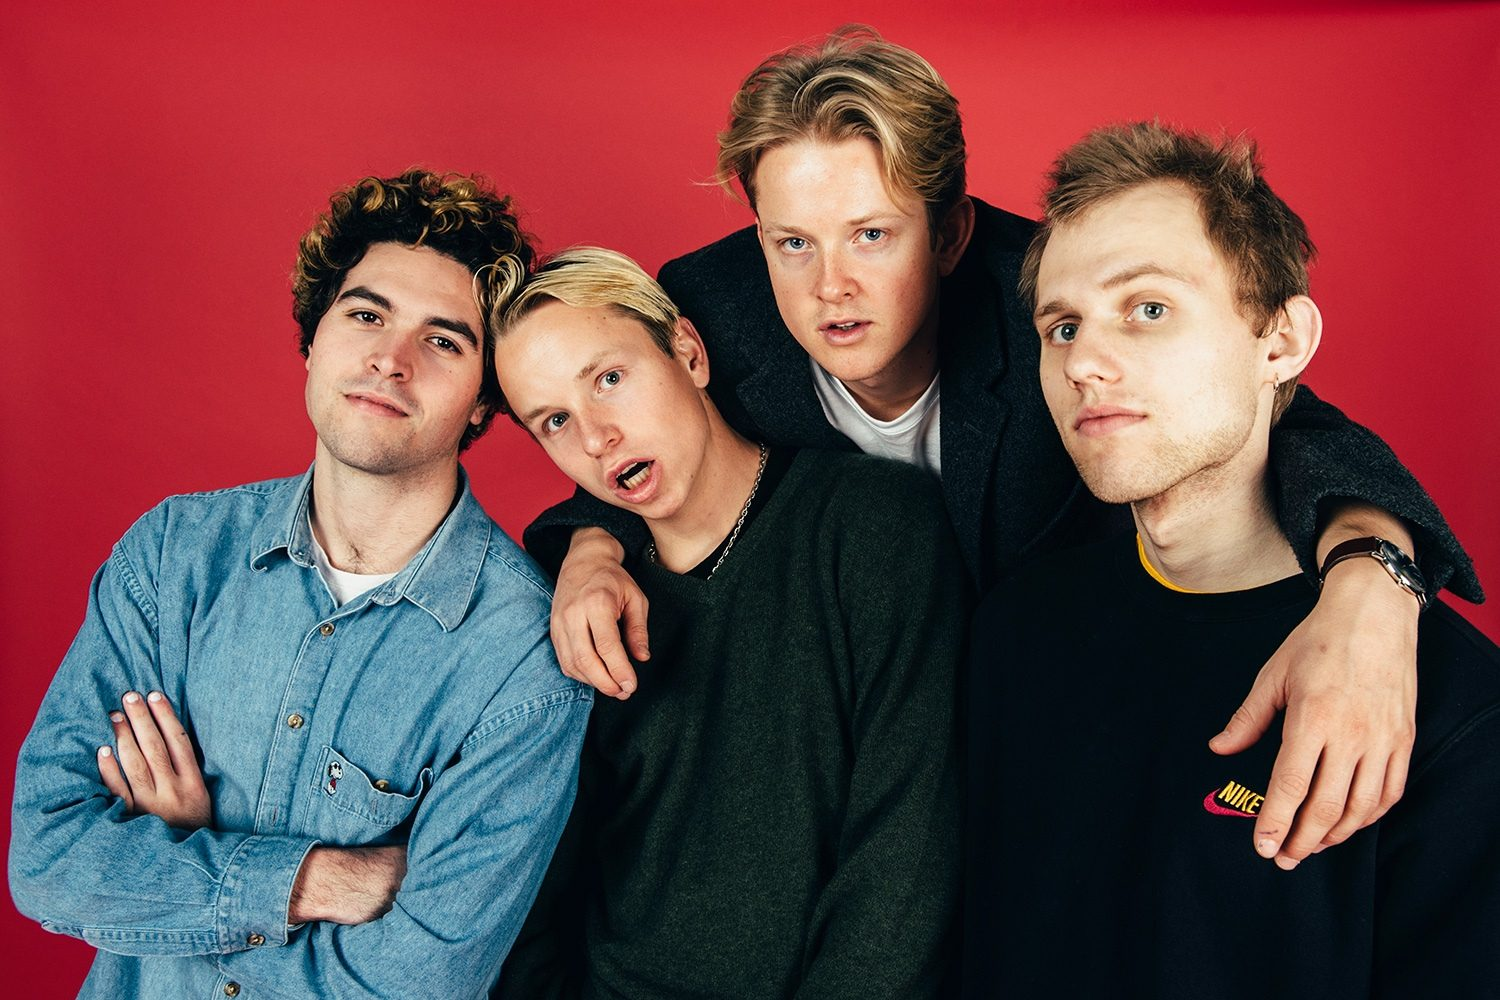 SWMRS have cancelled their remaining 2019 shows following a bus crash that's put vocalist Max Becker in intensive care